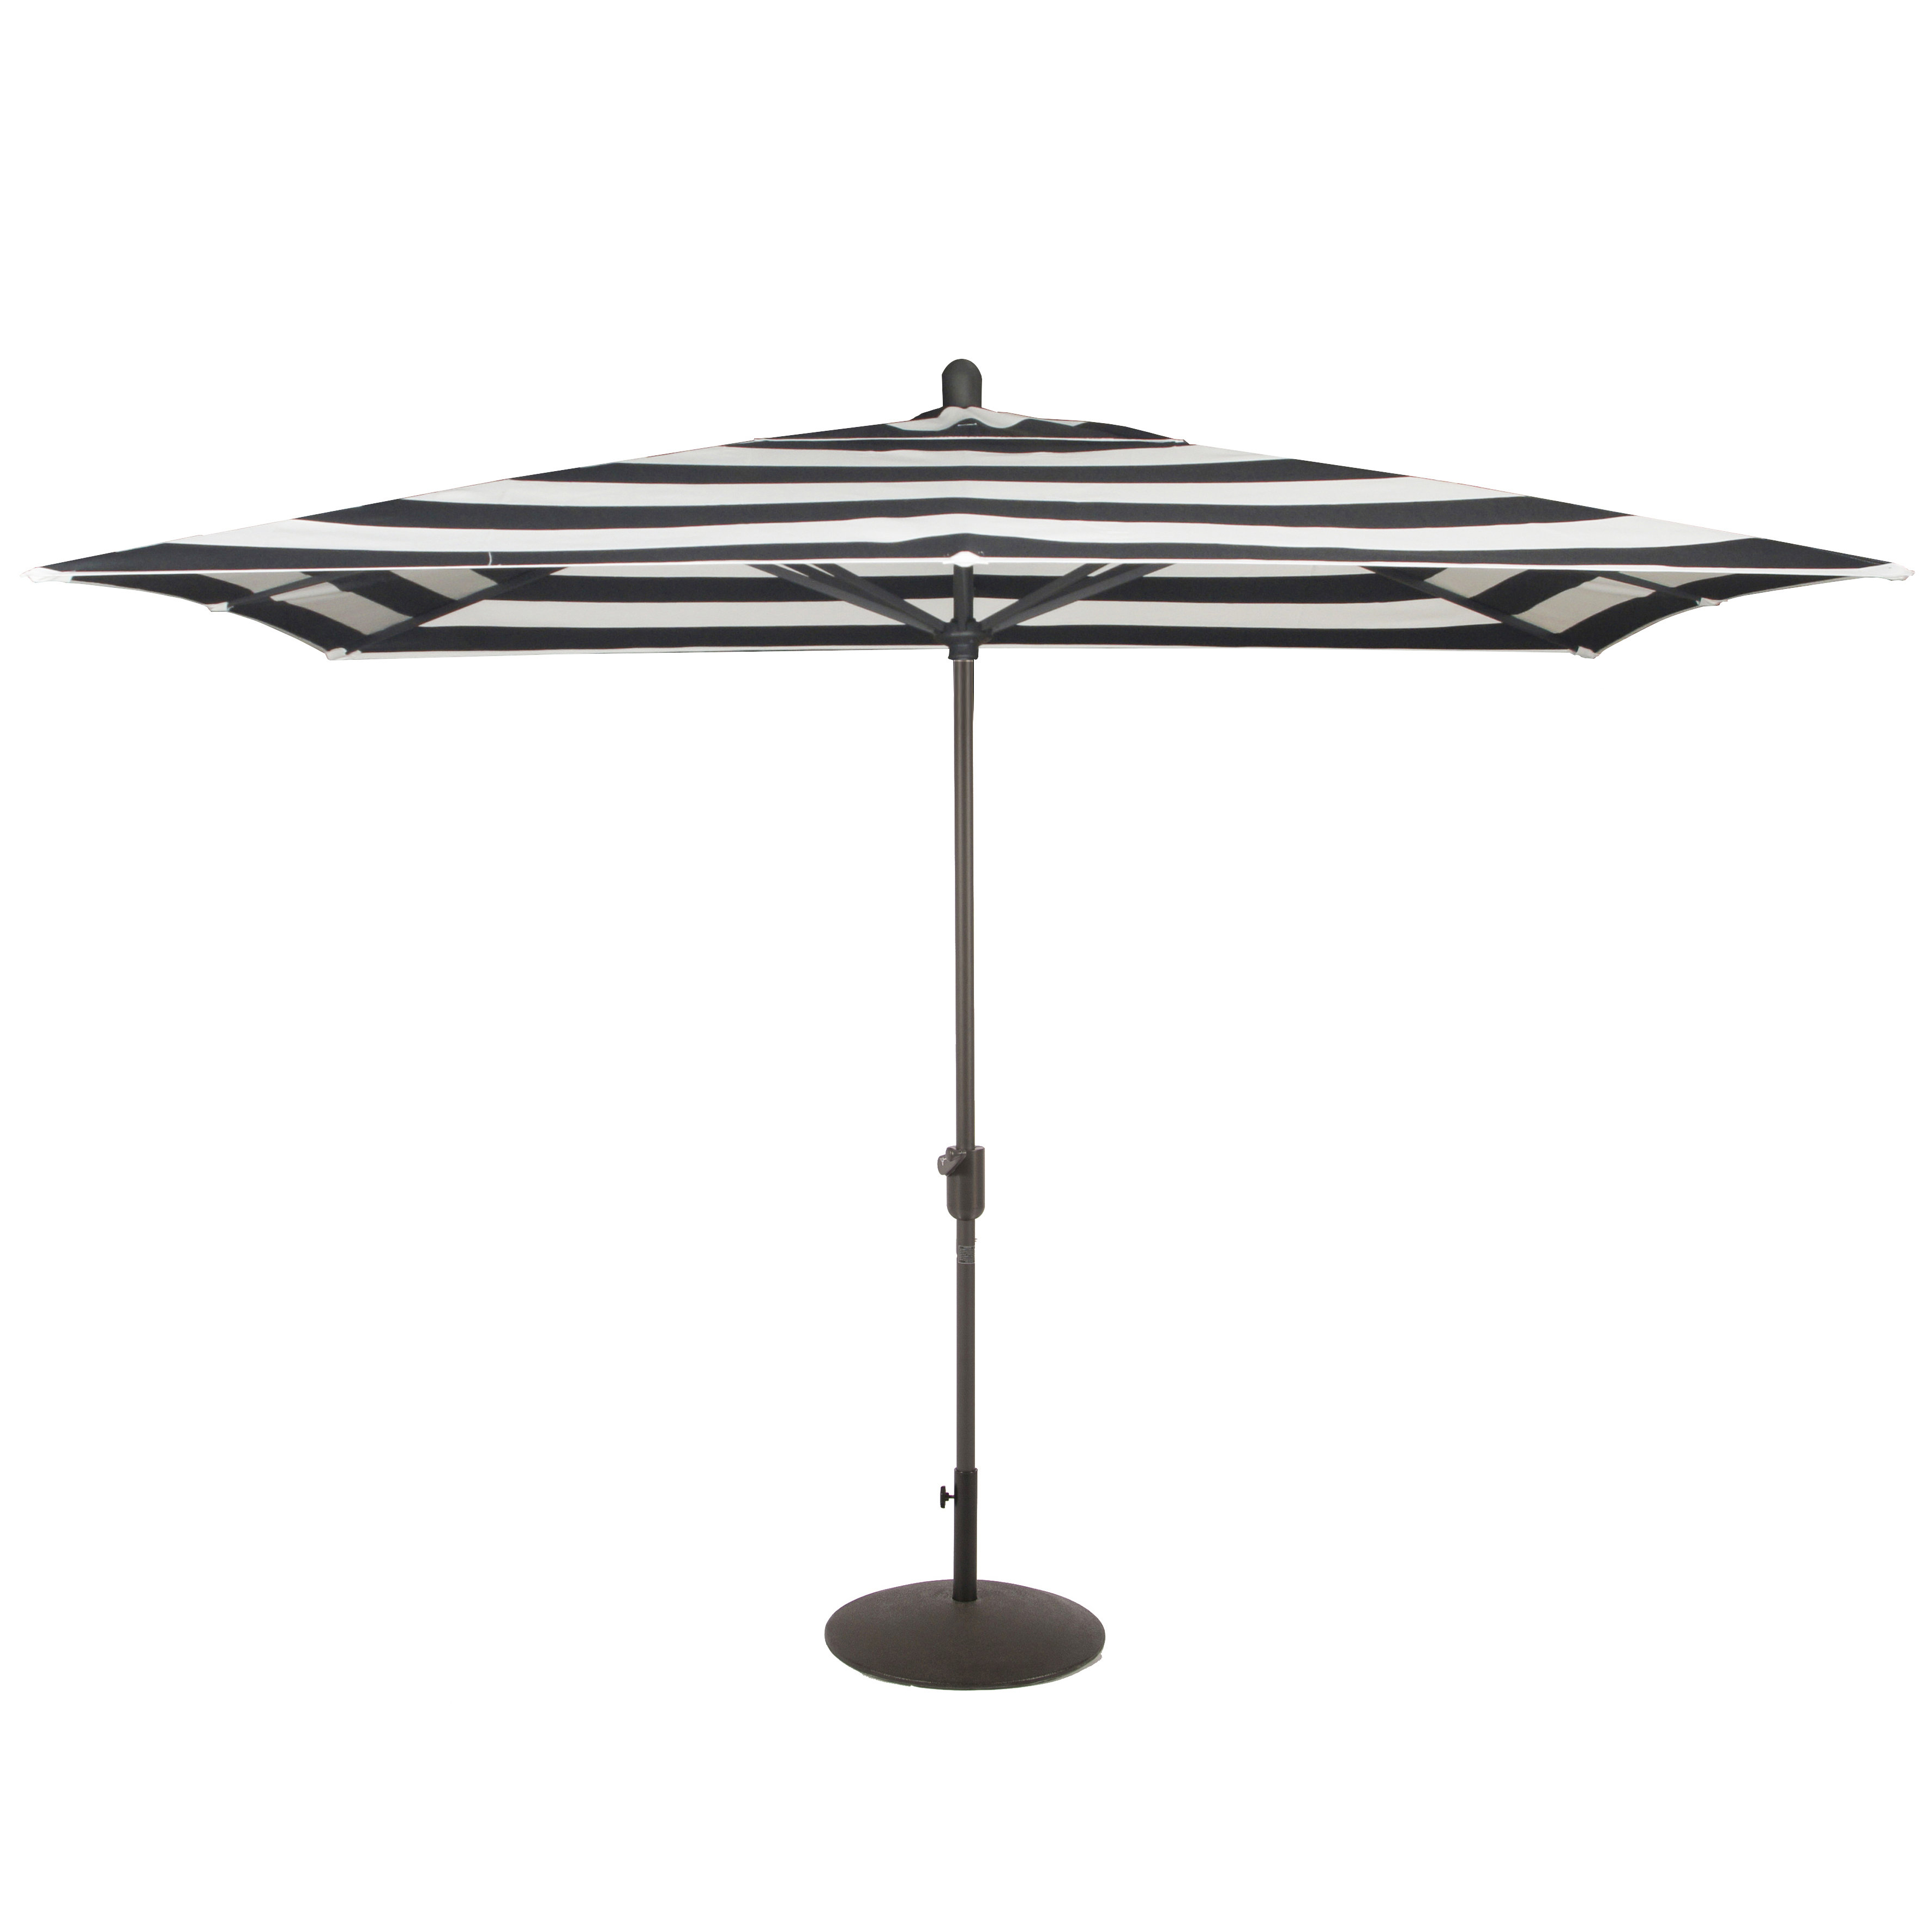 Best And Newest Wieczorek Auto Tilt 10' X 6.5' Rectangular Market Sunbrella Umbrella With Regard To Wiechmann Push Tilt Market Sunbrella Umbrellas (Gallery 7 of 20)